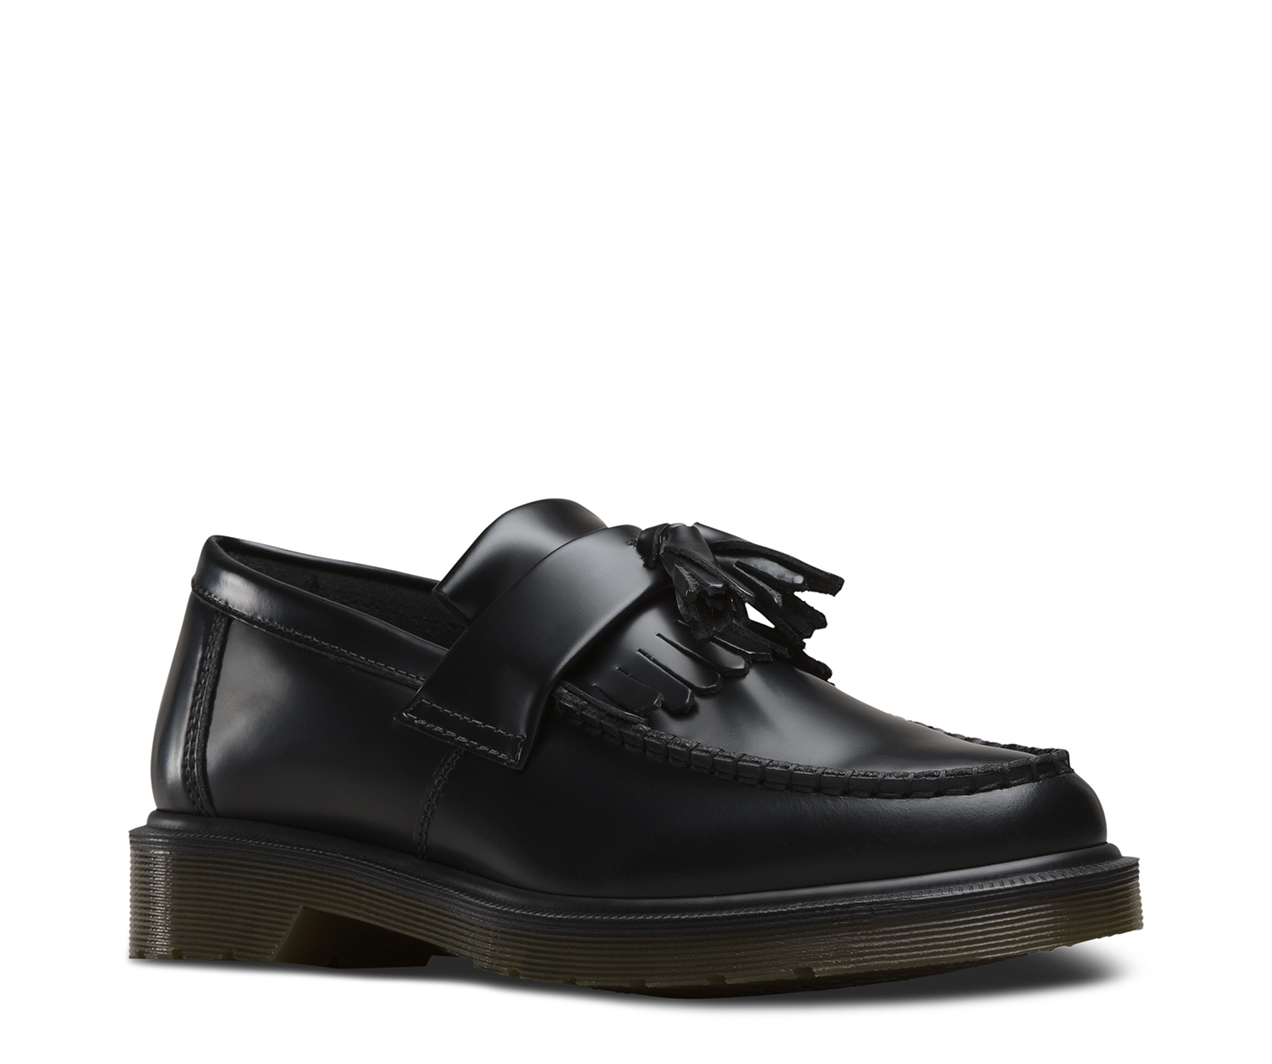 Dr.Martens Mens Adrian Black Leather Shoes 45 EU Dr. Martens Footlocker Finish Günstiger Preis hQBnP